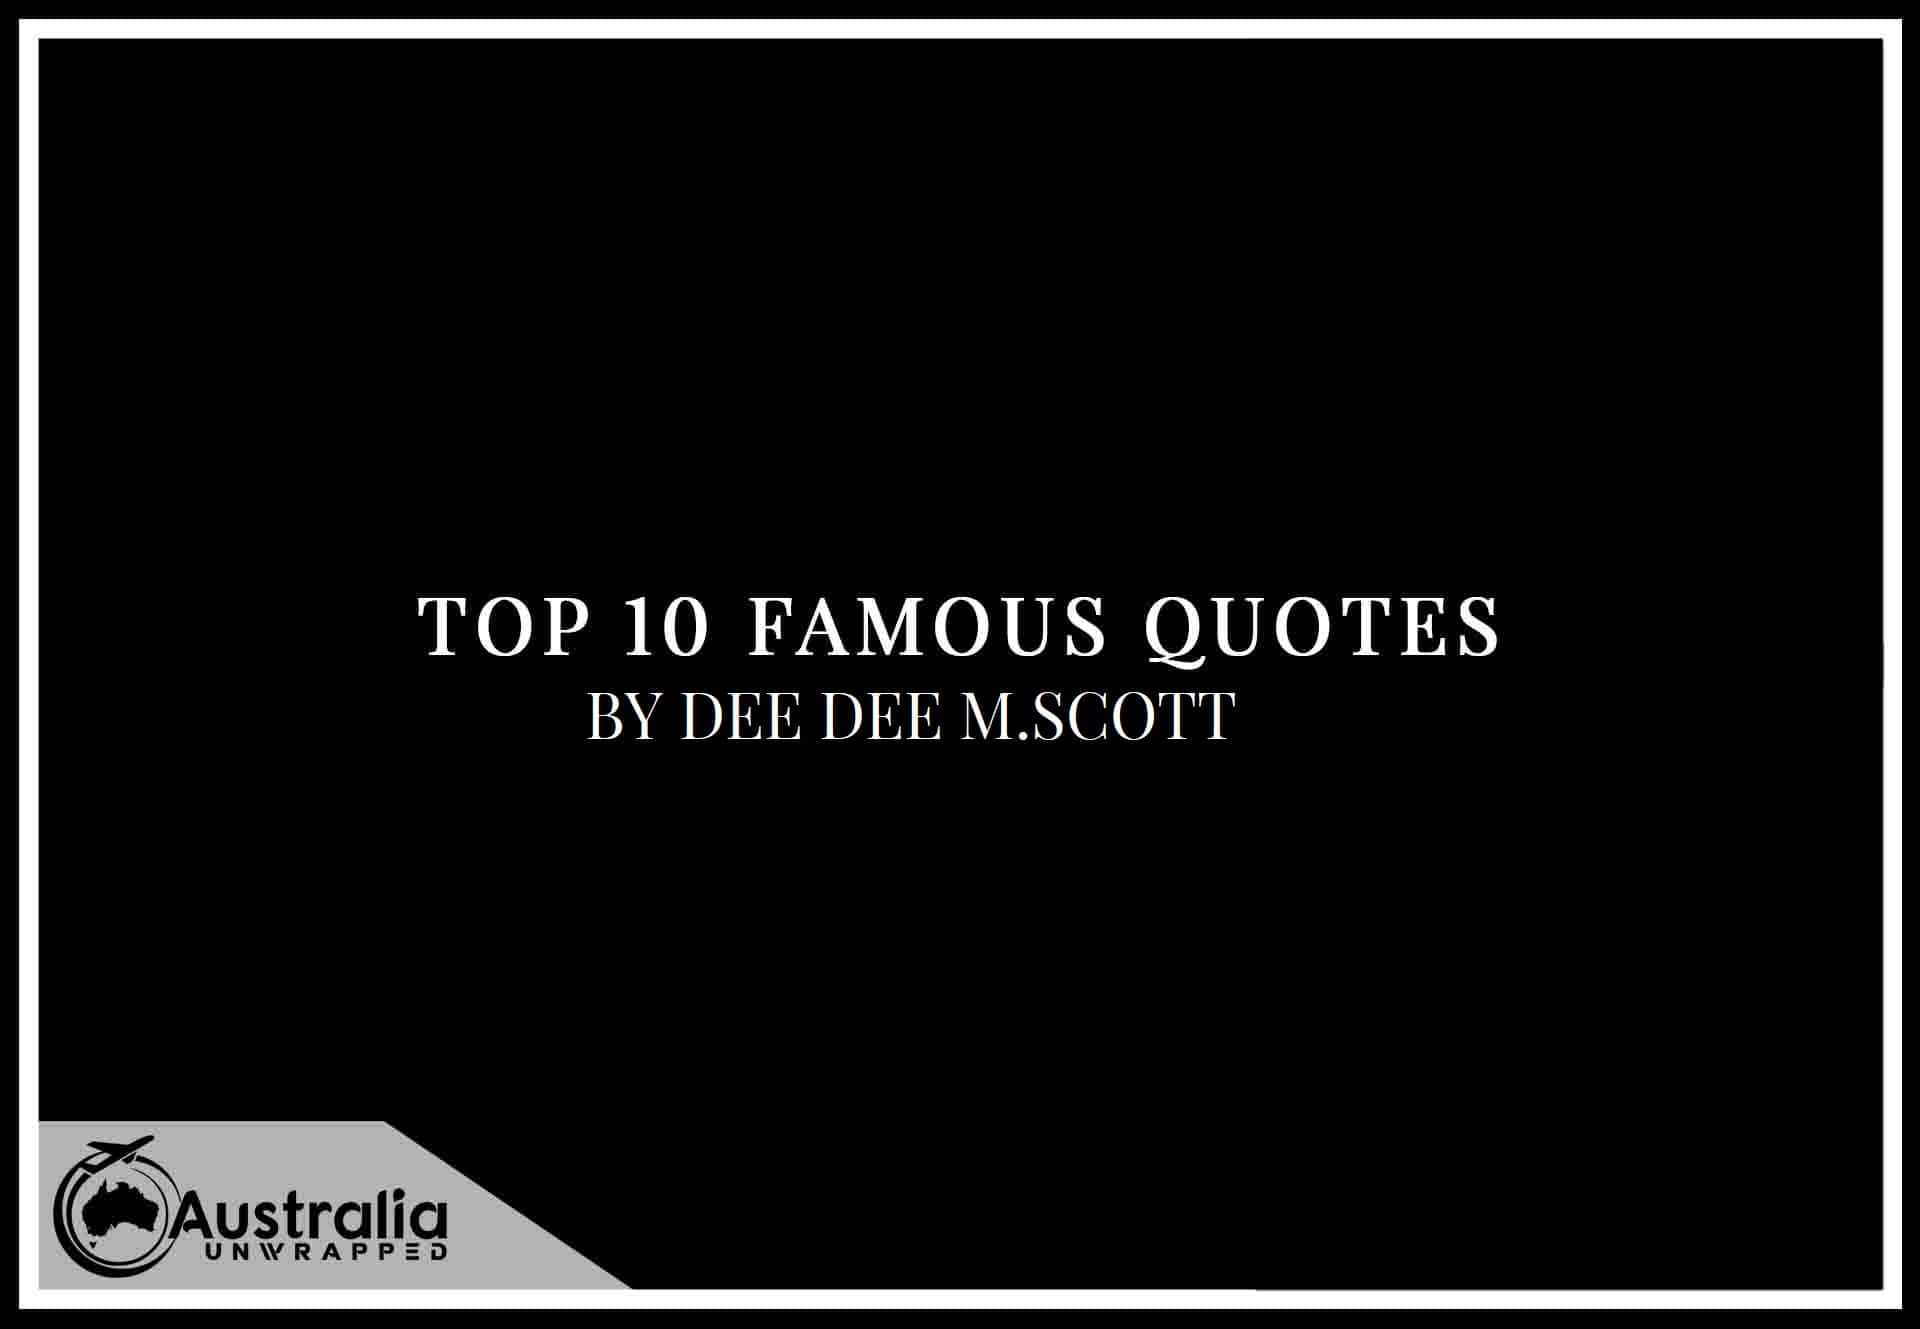 Top 10 Famous Quotes by Author Dee Dee M. Scott